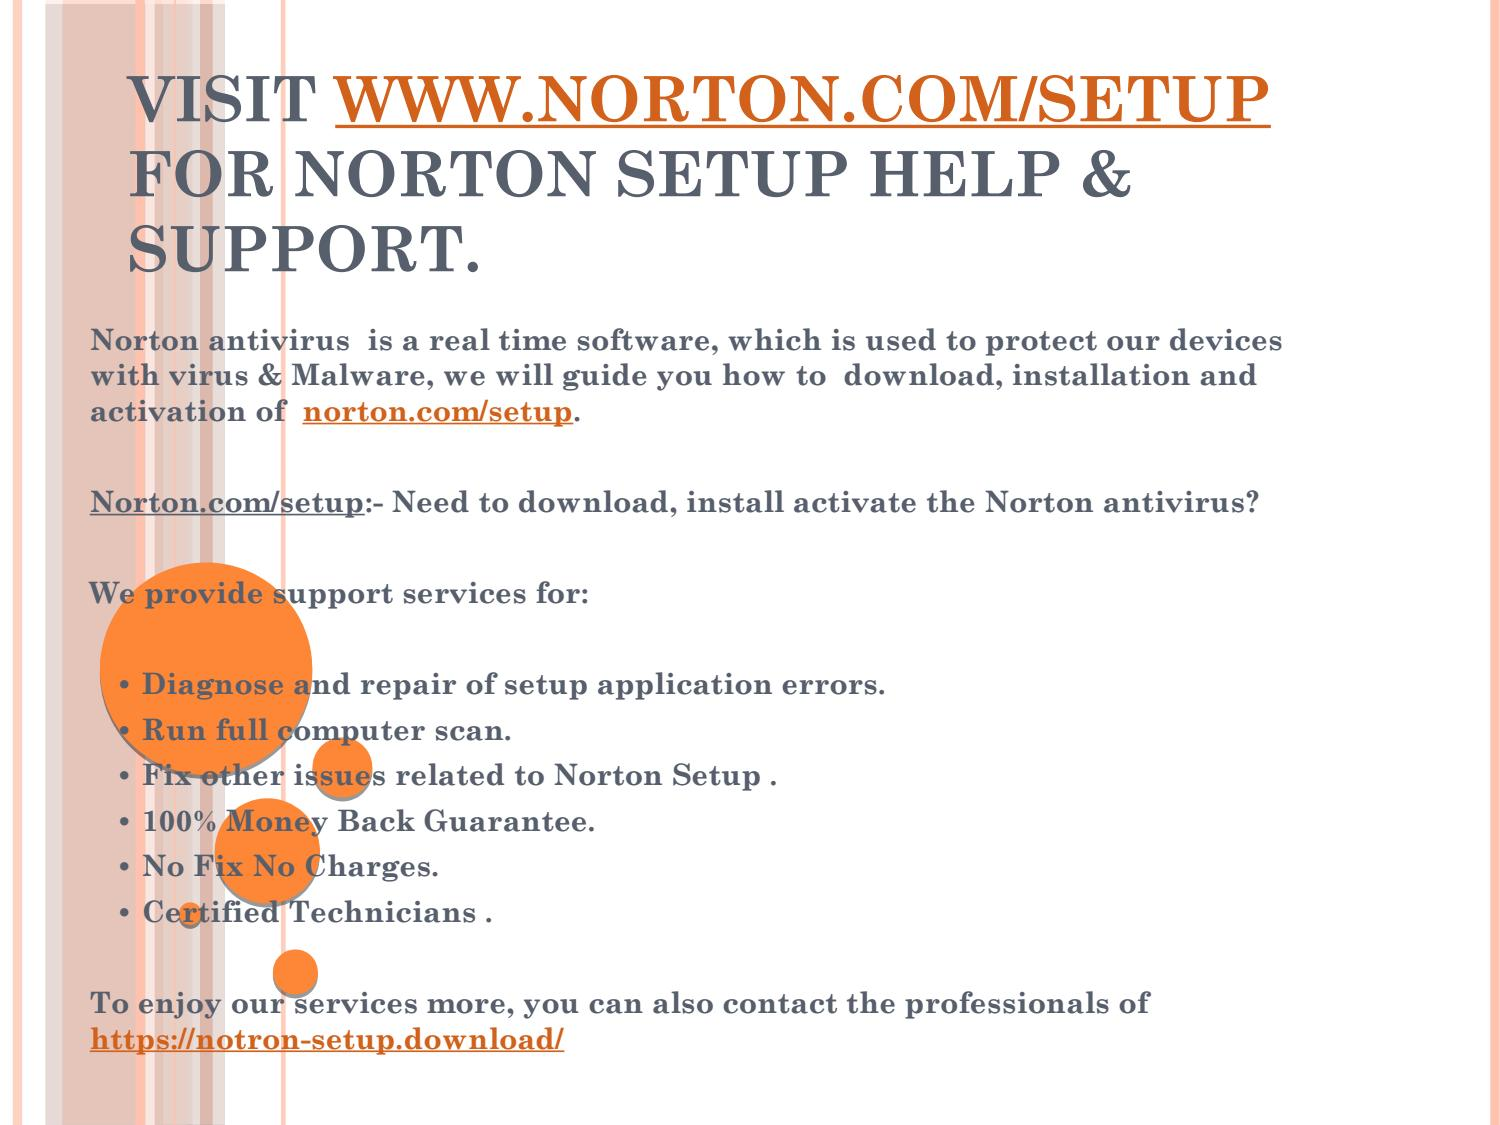 norton security installation help & support norton/setup. by